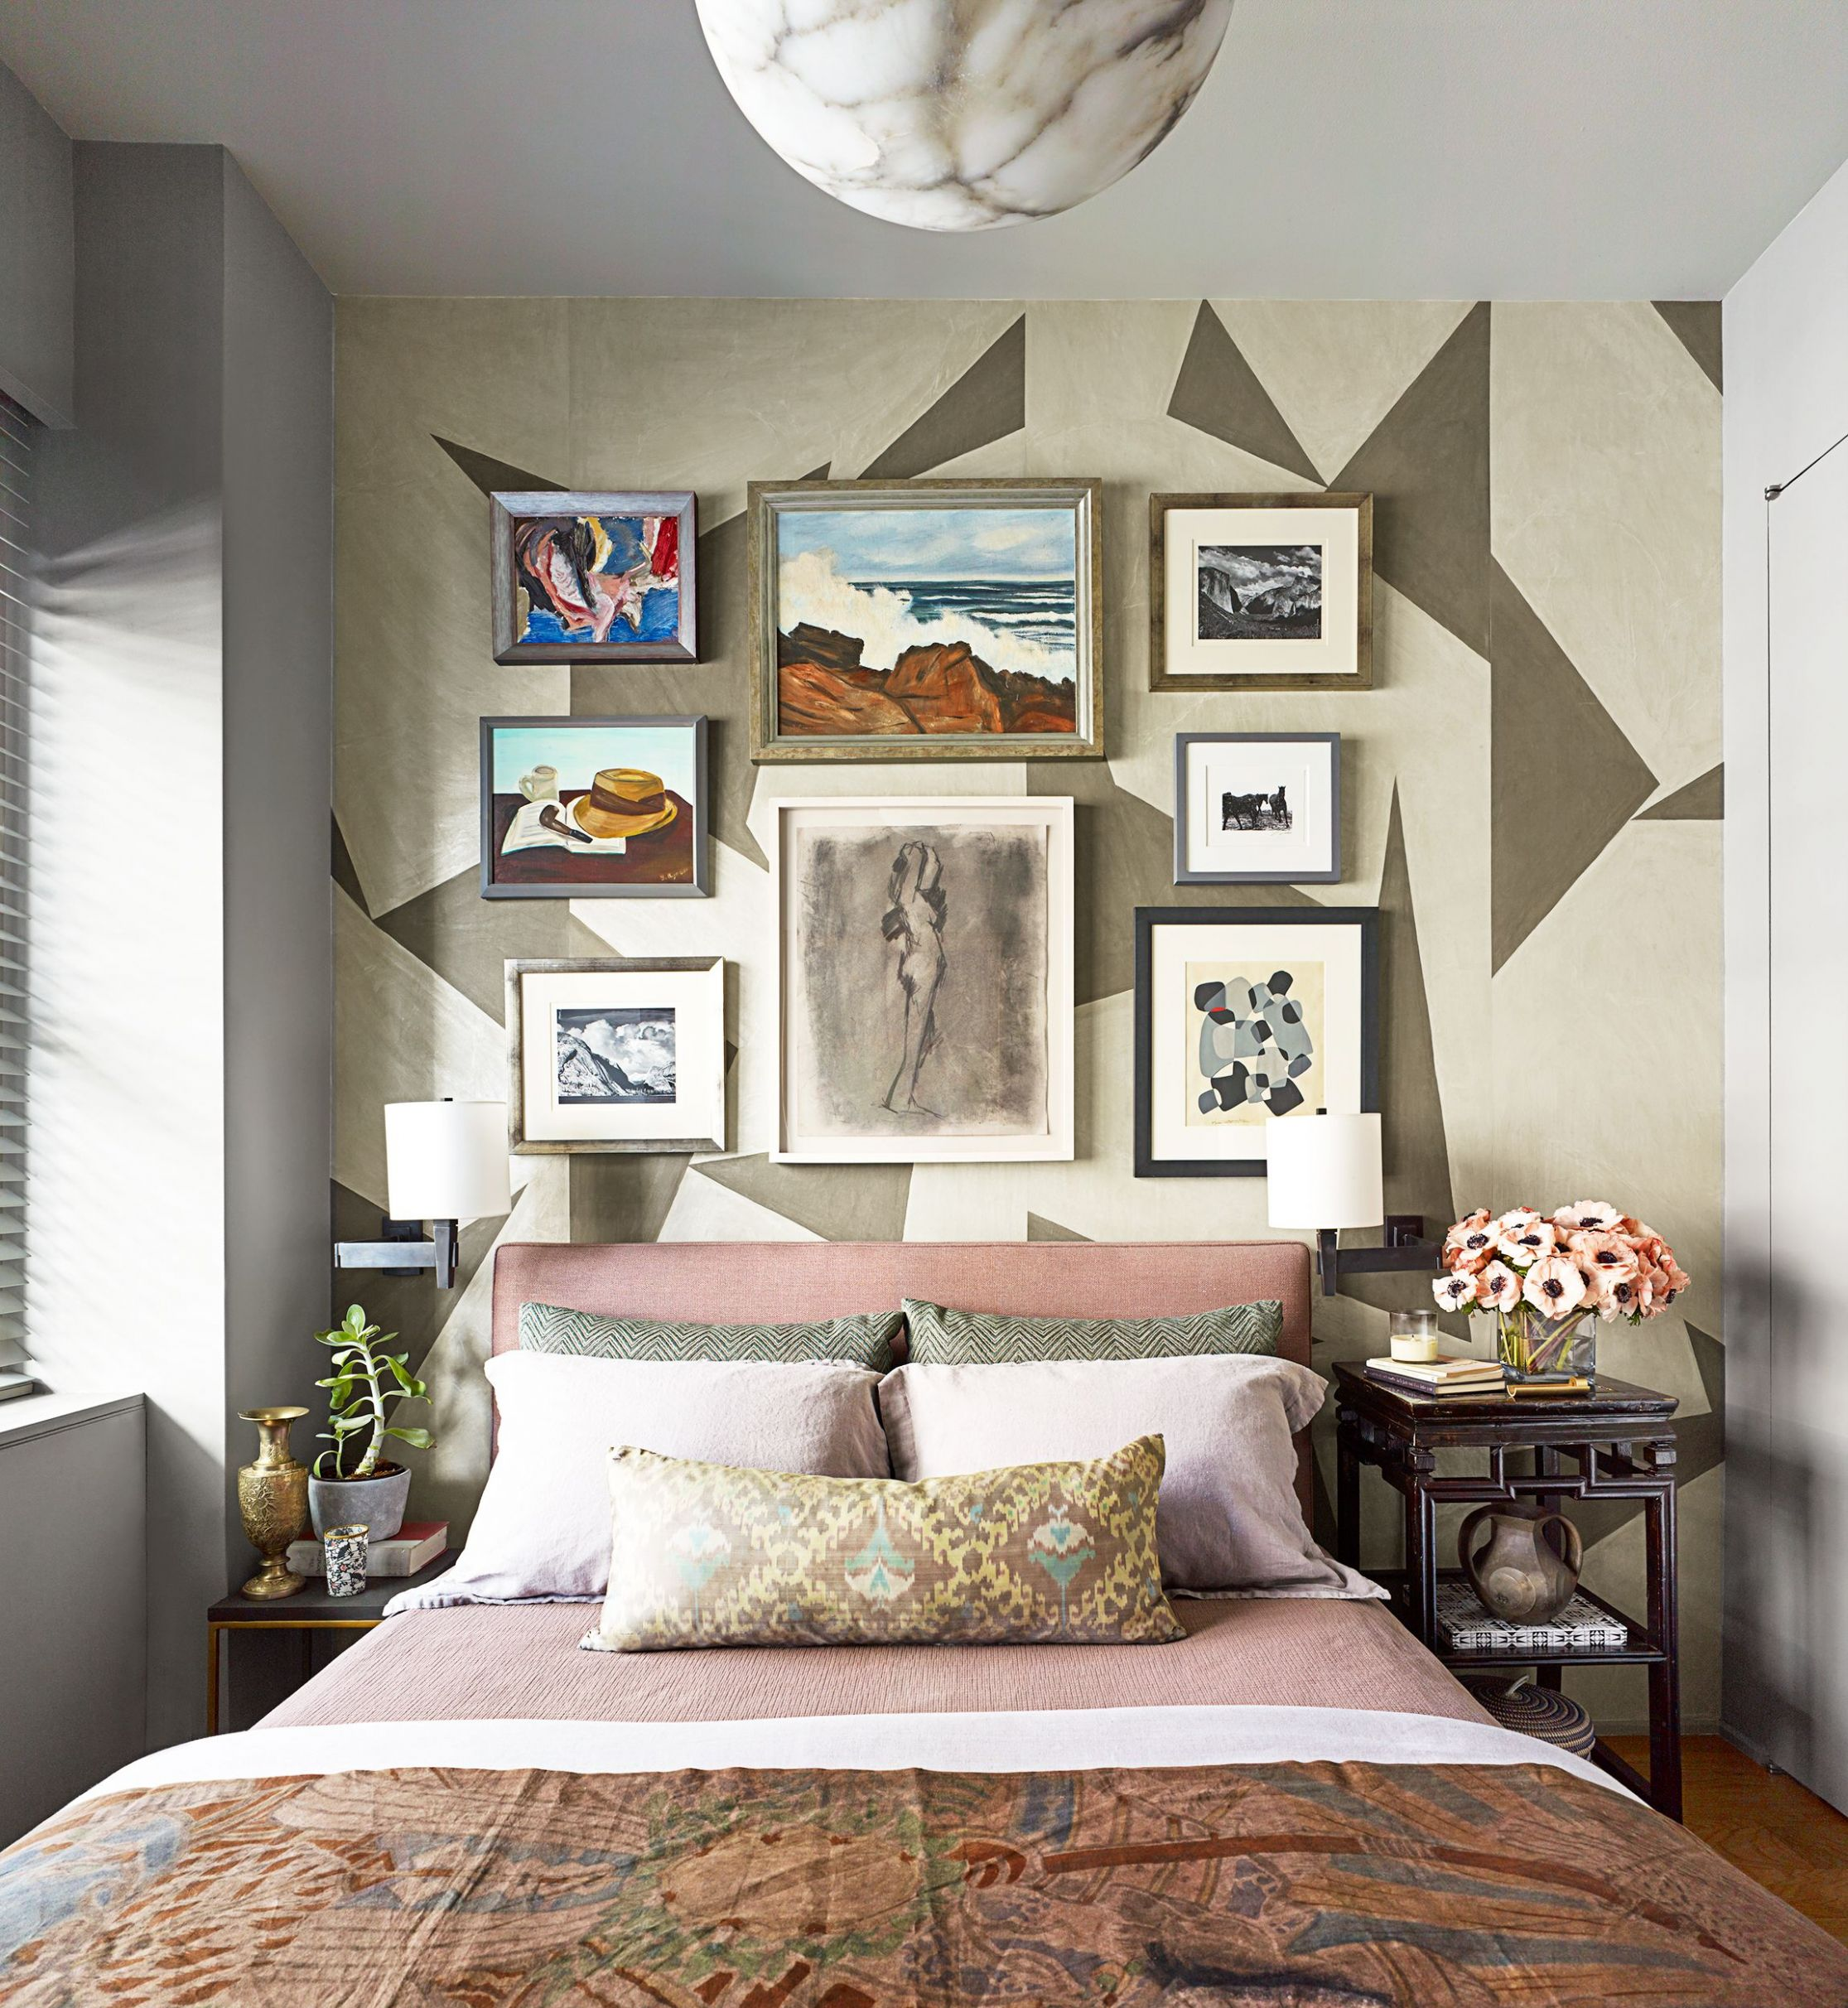 12 Small Bedroom Design Ideas - How to Decorate a Small Bedroom - bedroom ideas small spaces